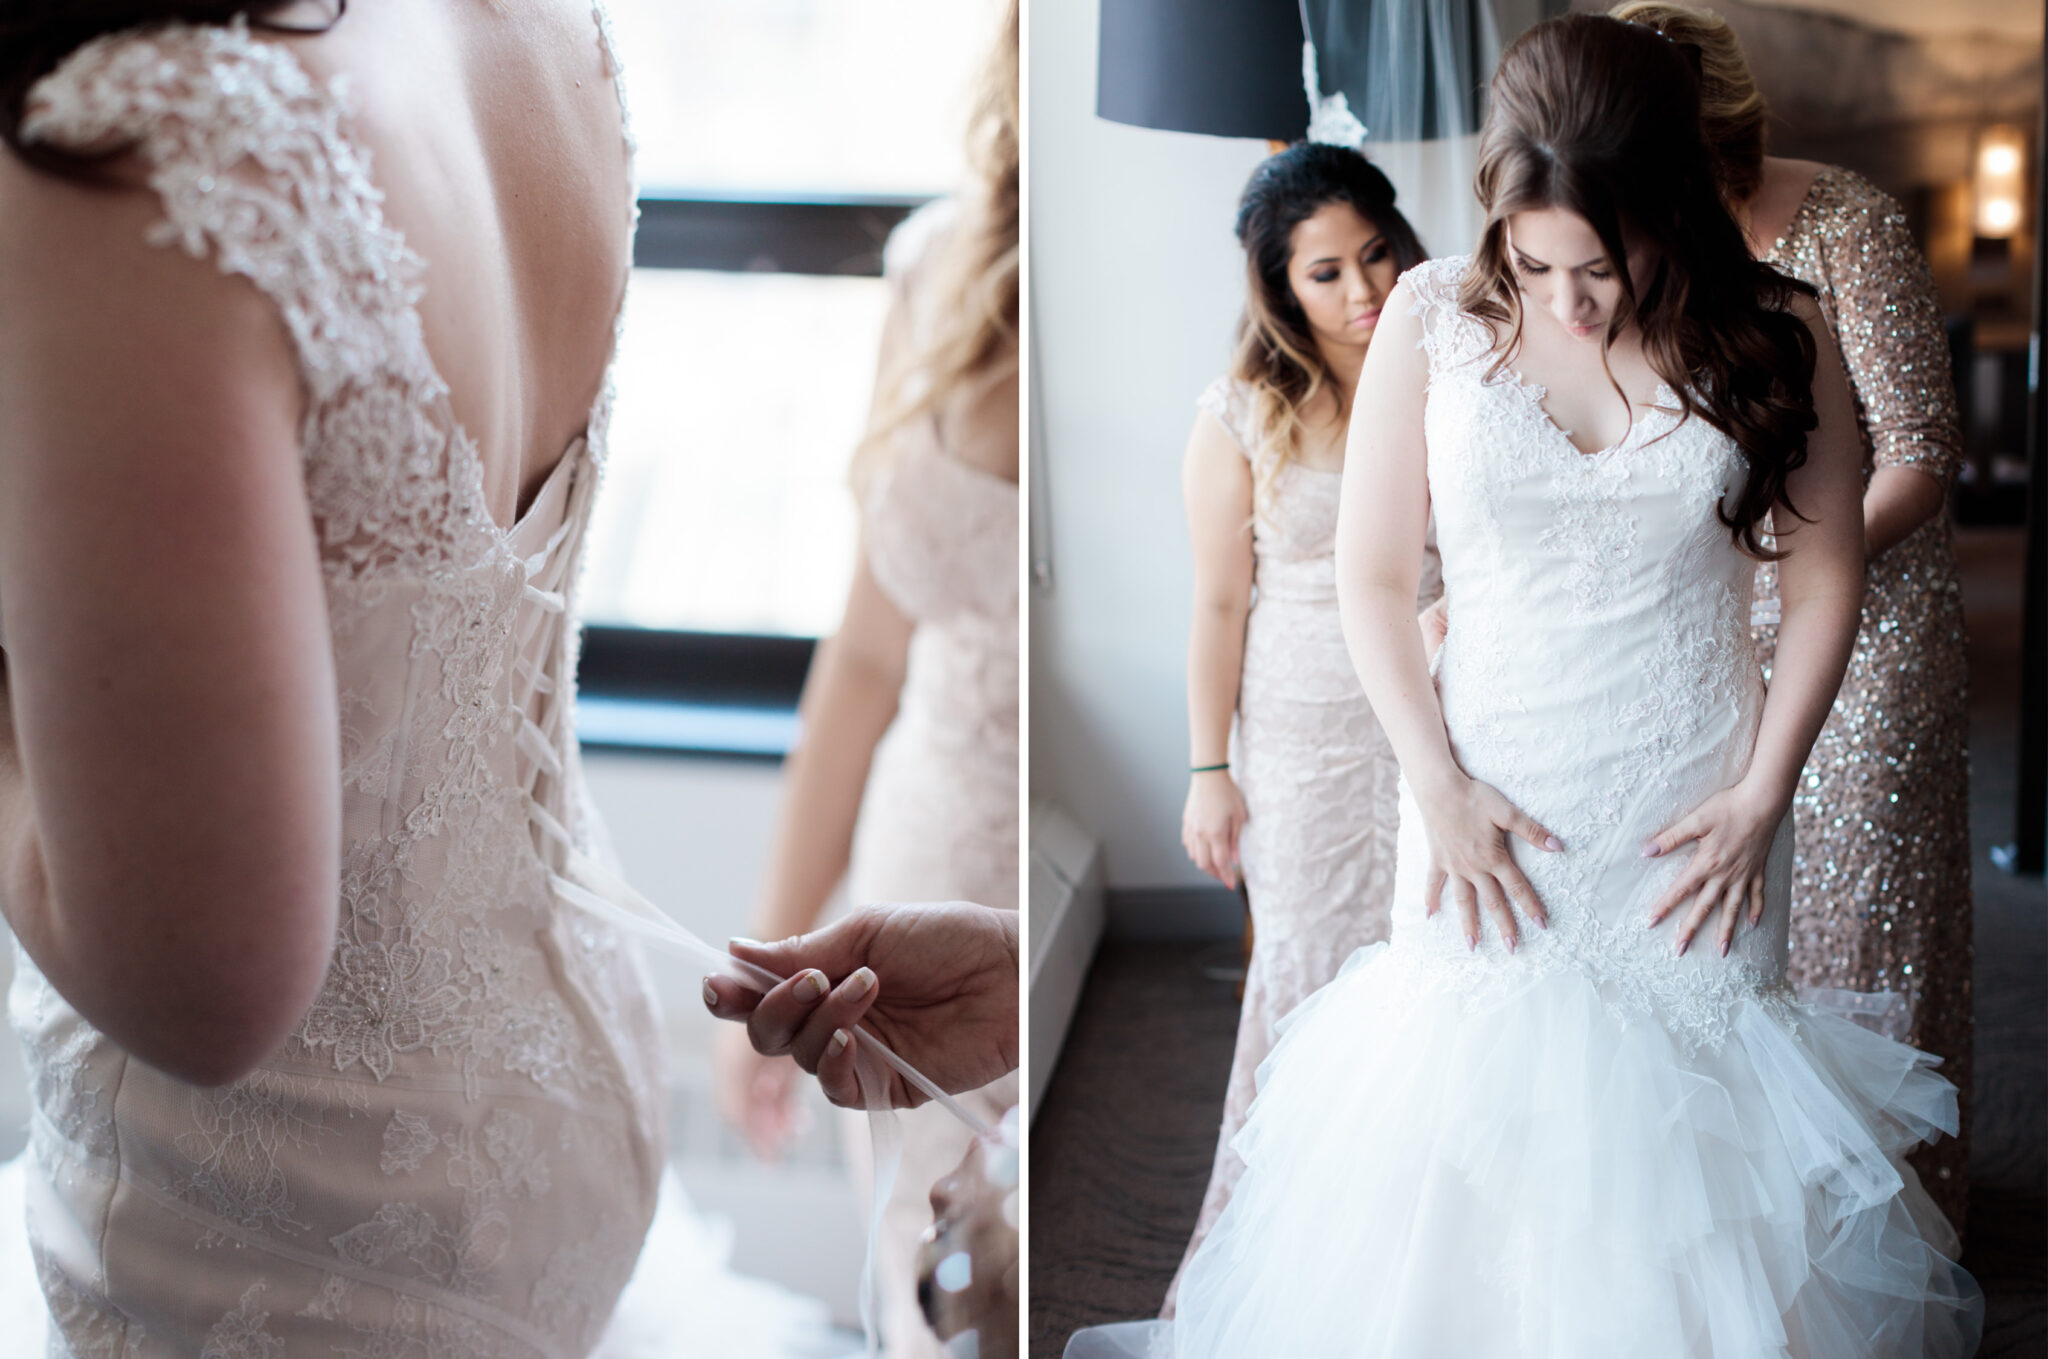 Getting Ready Wedding Photography Ideas